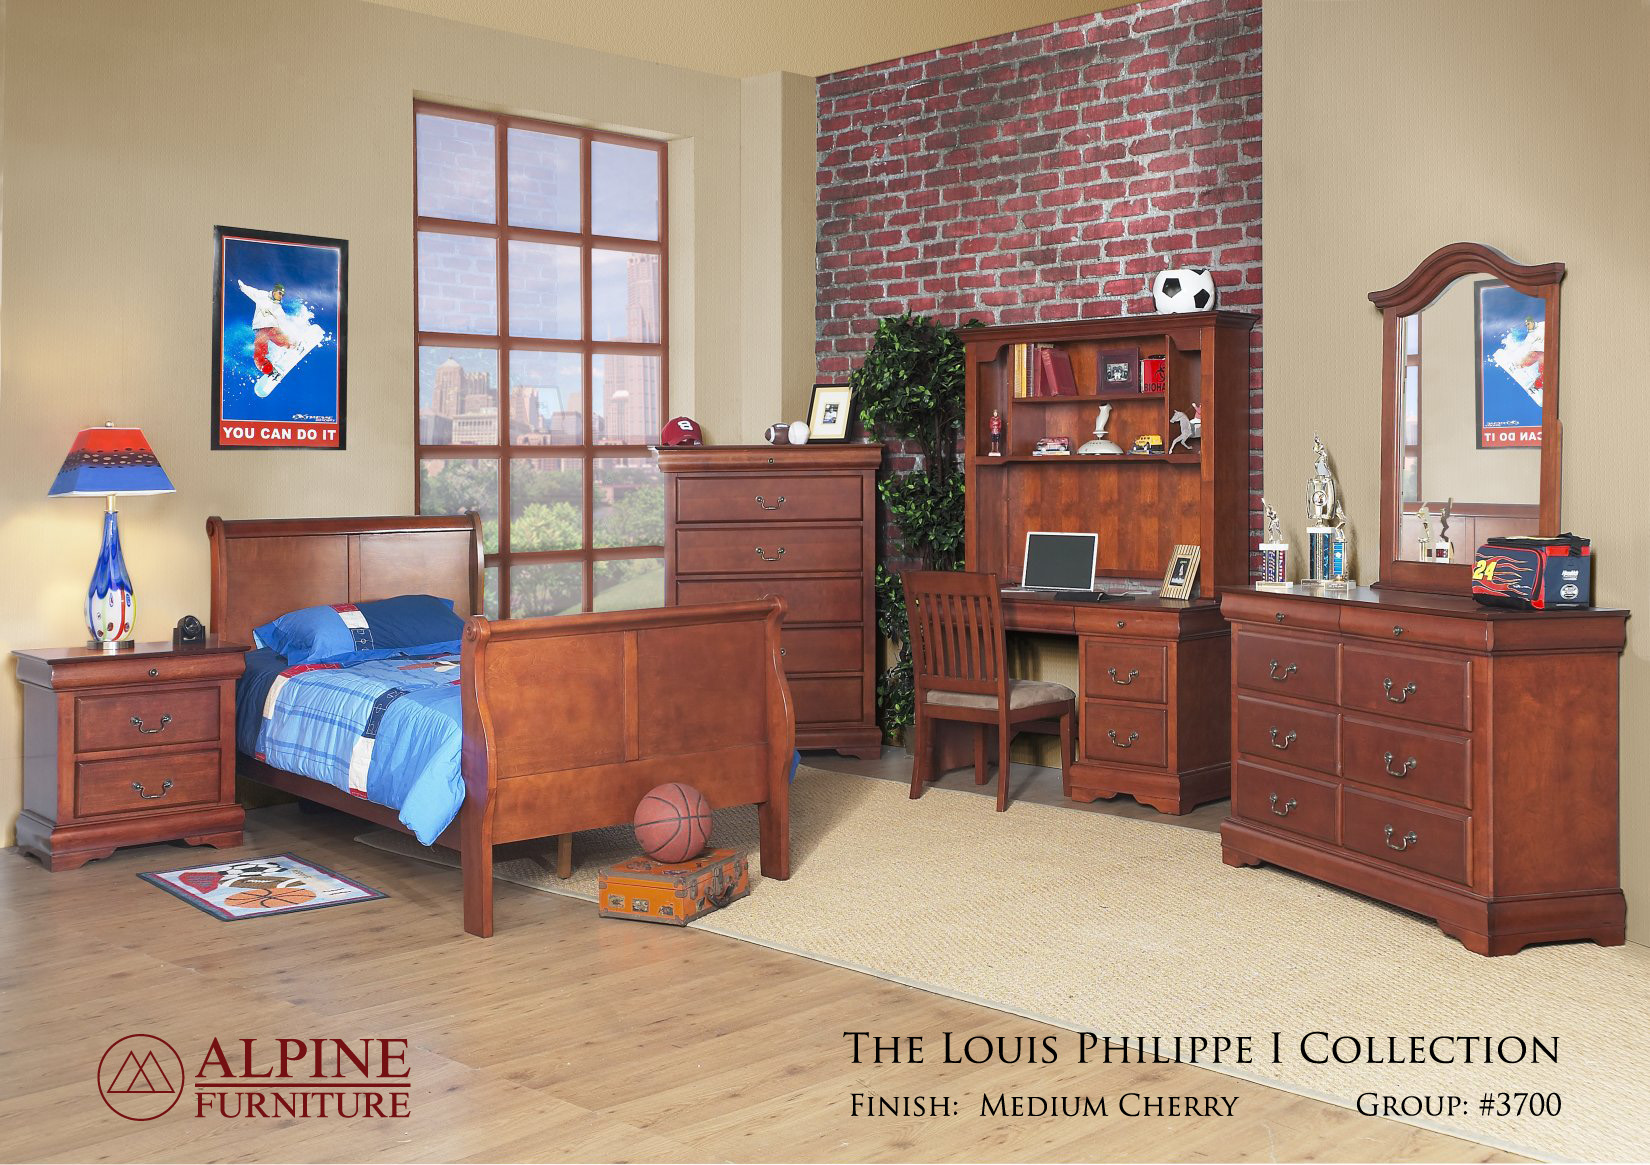 Louis philippe bedroom collection group 3700 customer - Louis philippe bedroom collection ...